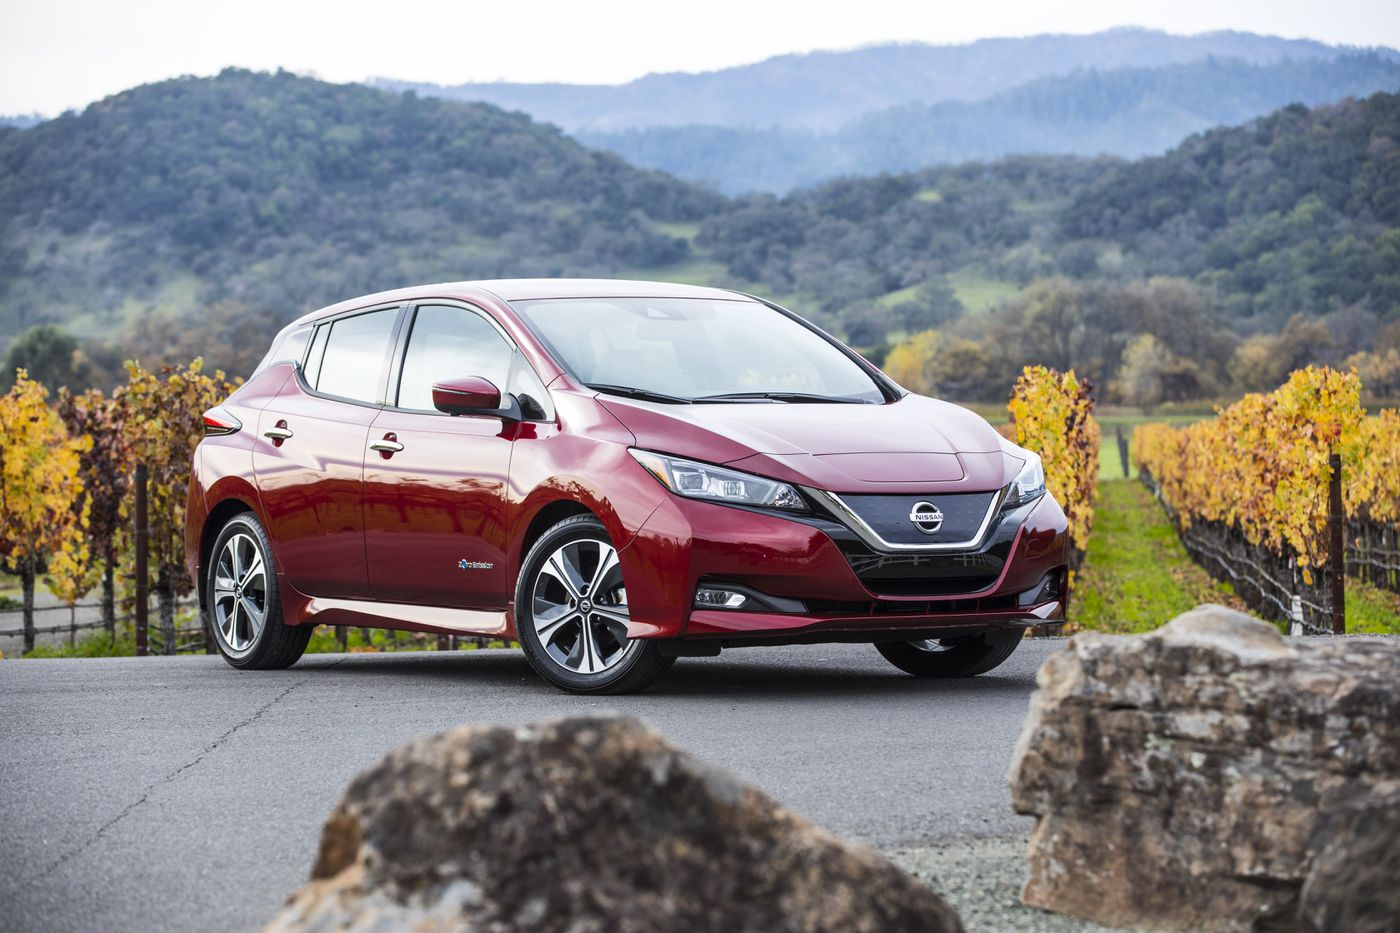 2018 Nissan Leaf could be a fun choice — if it fits your lifestyle | Scott Sturgis